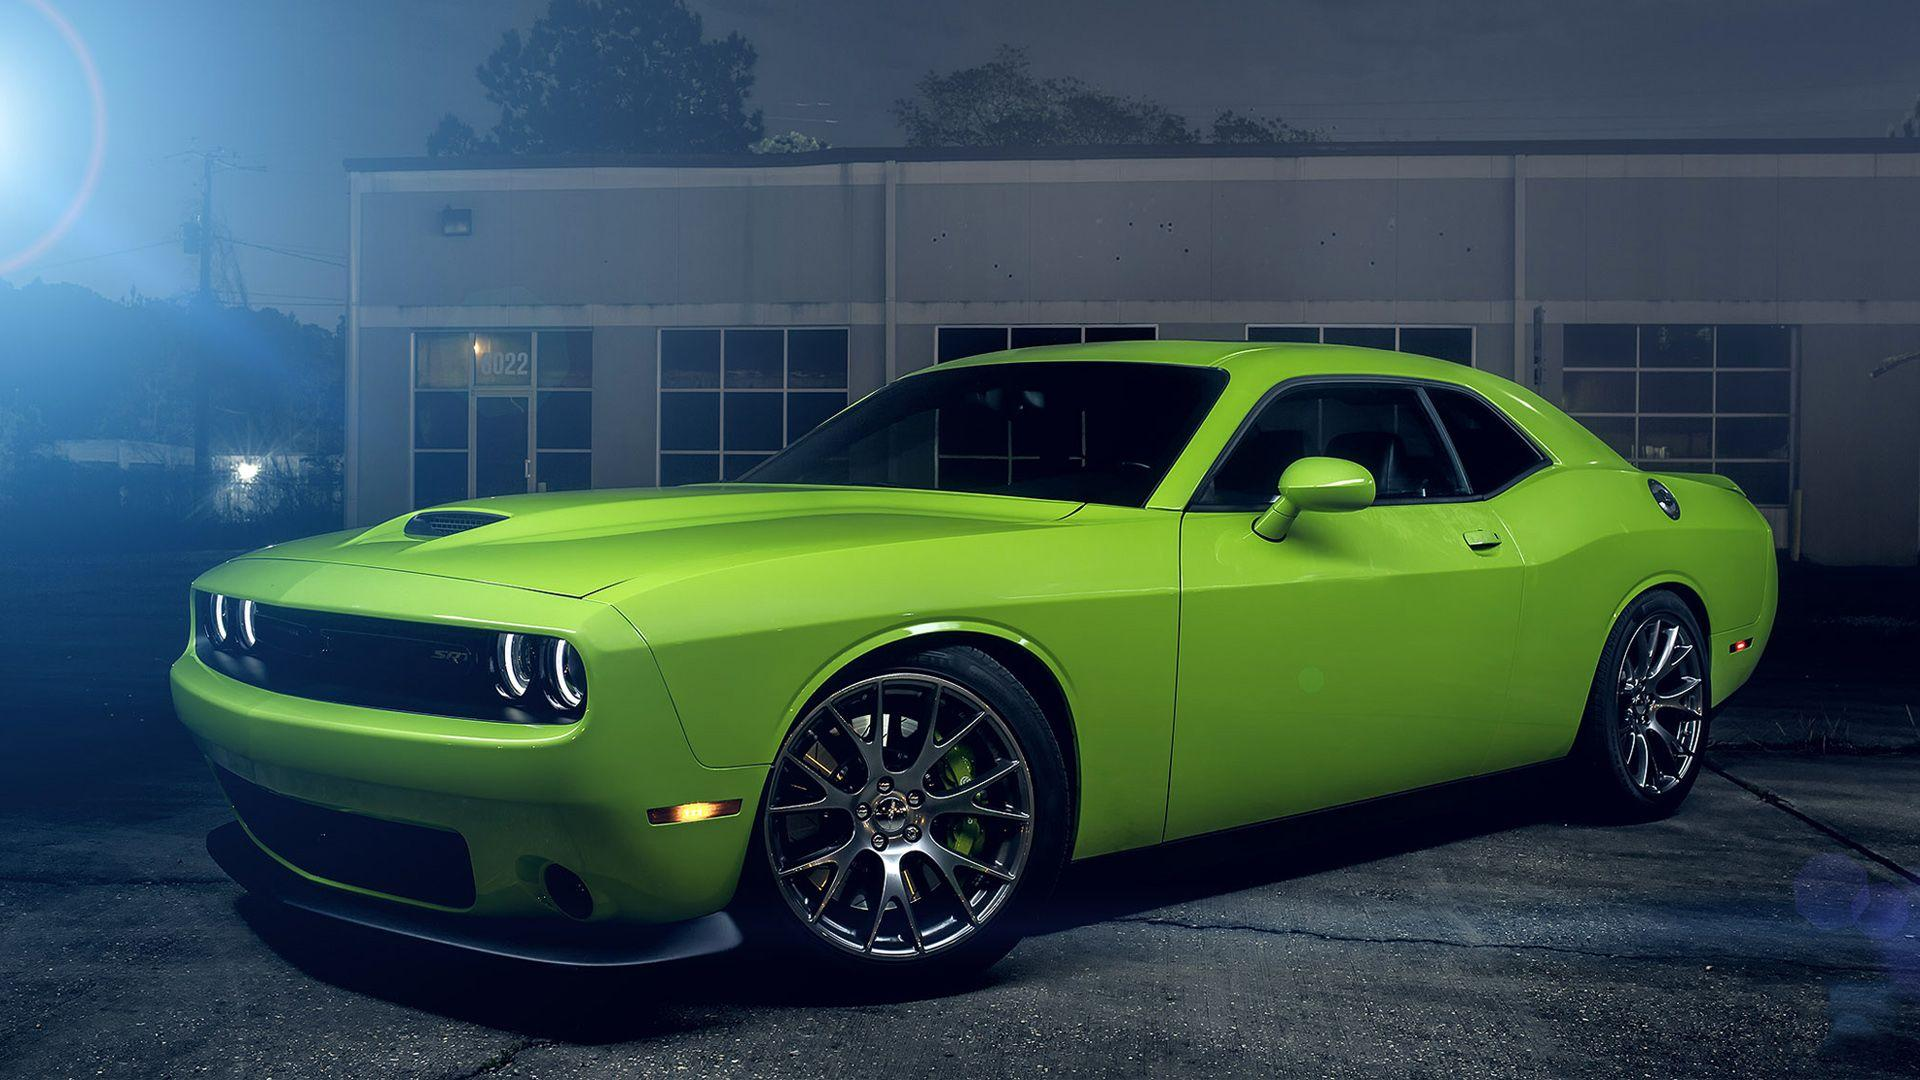 Free Download Dodge Challenger Backgrounds